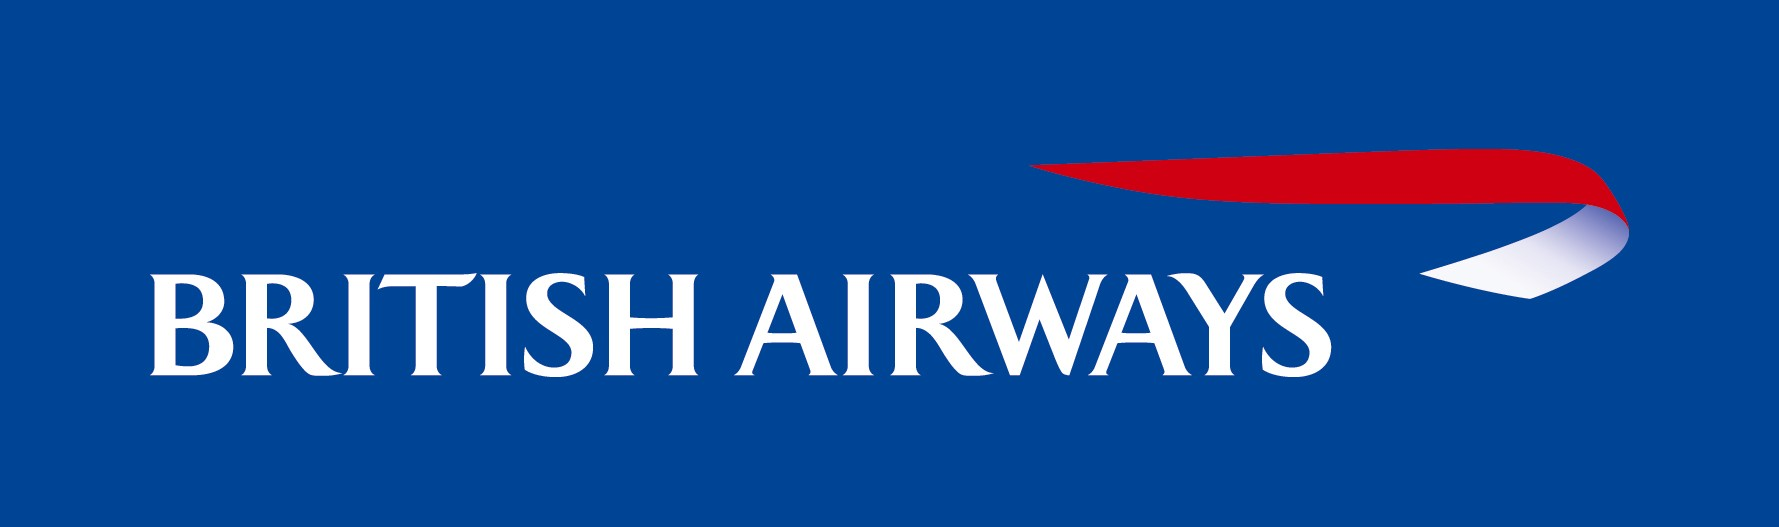 british airways logo banner - British Airways Logo PNG